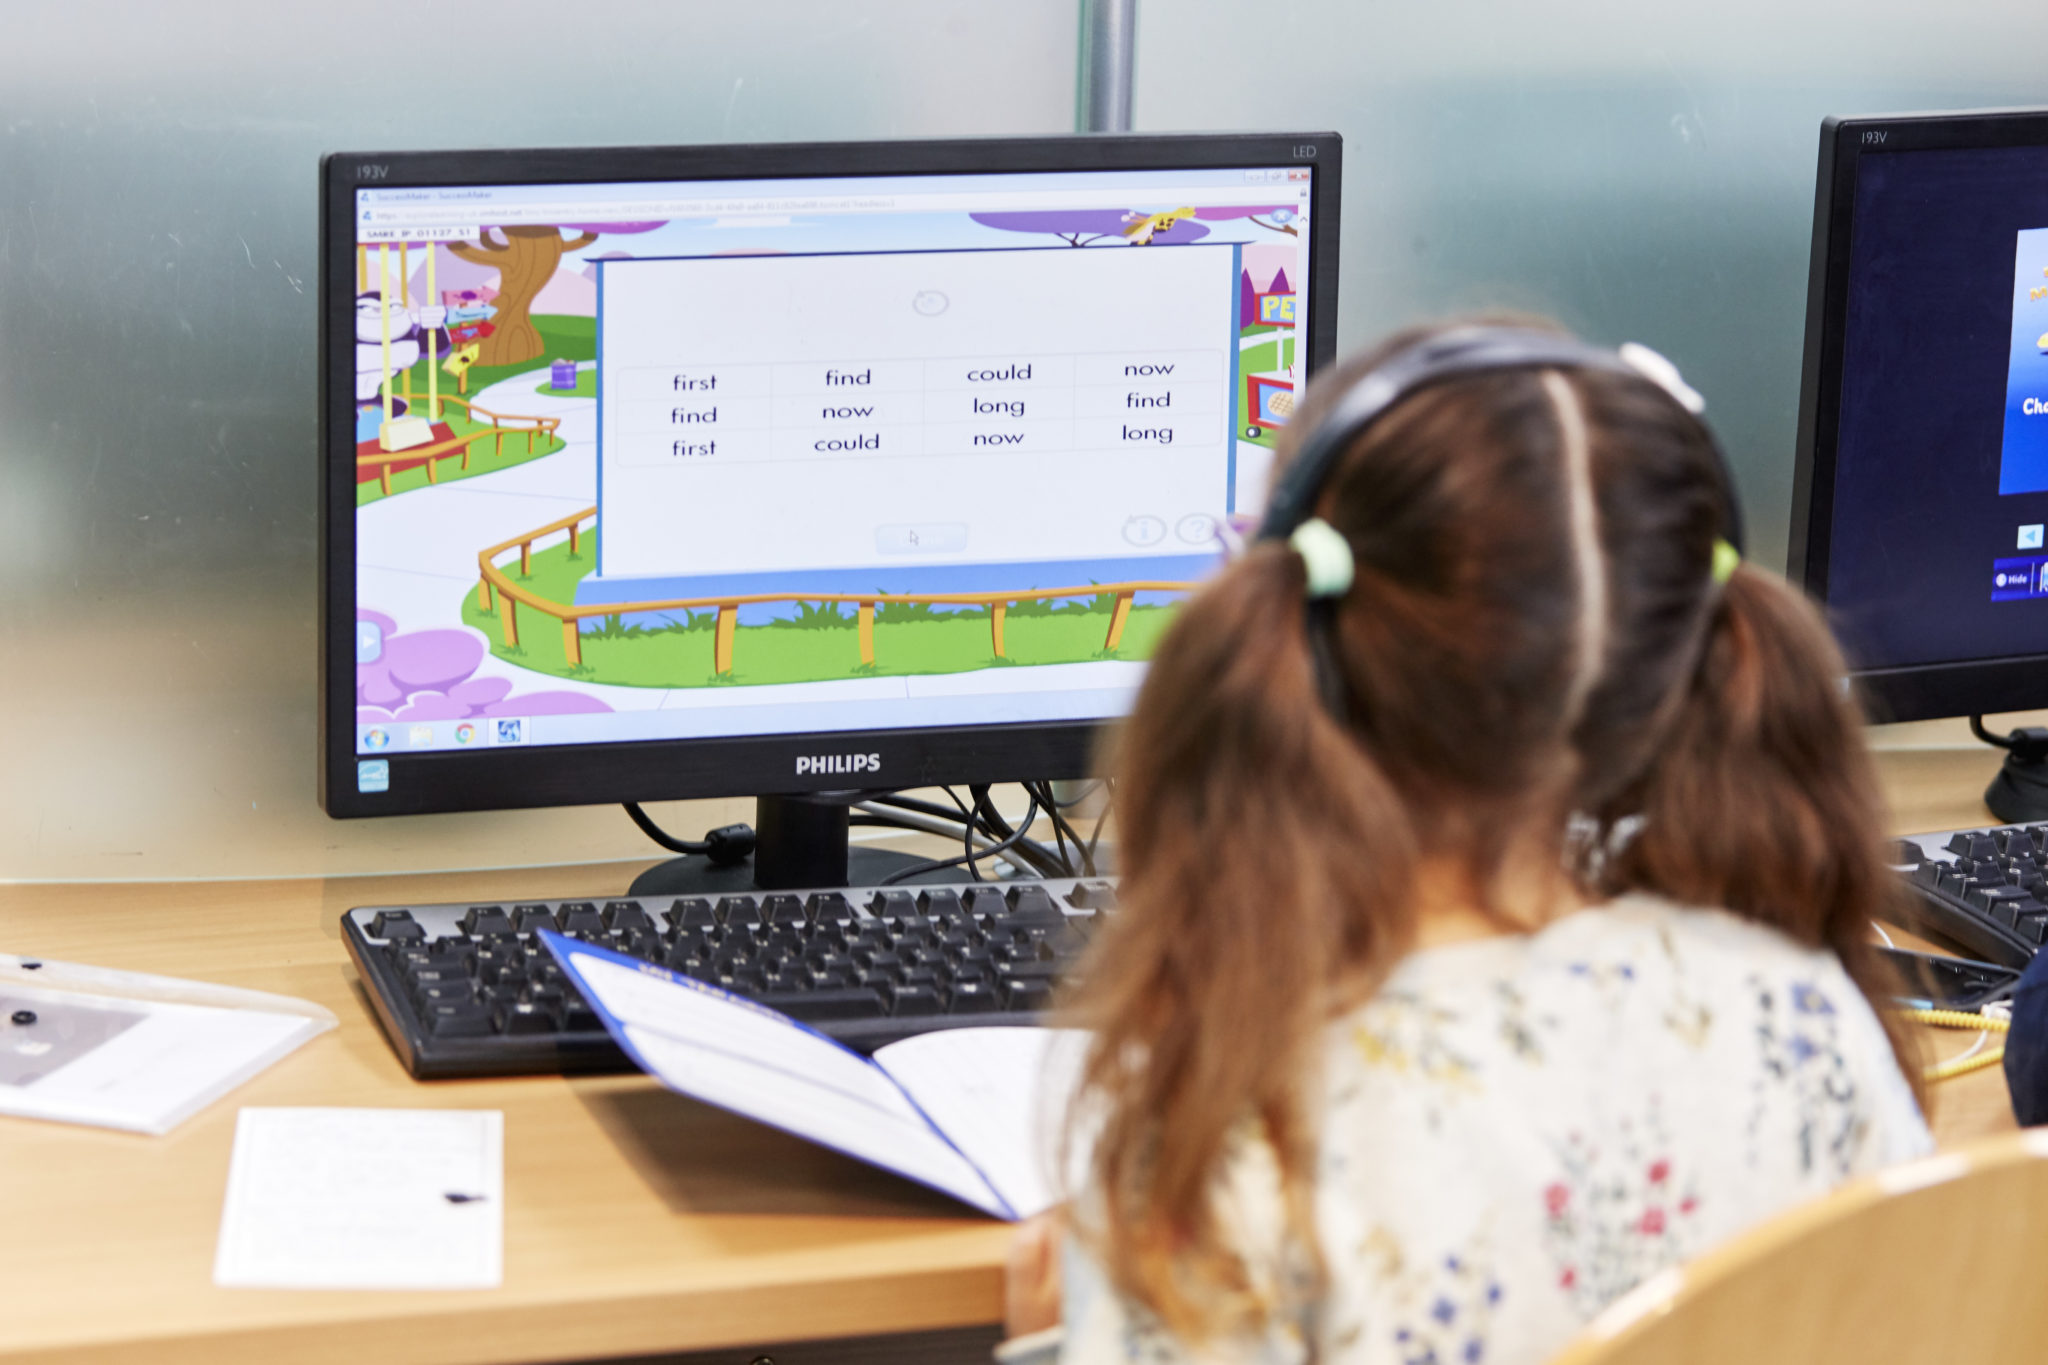 Student completing home learning activities on the computer